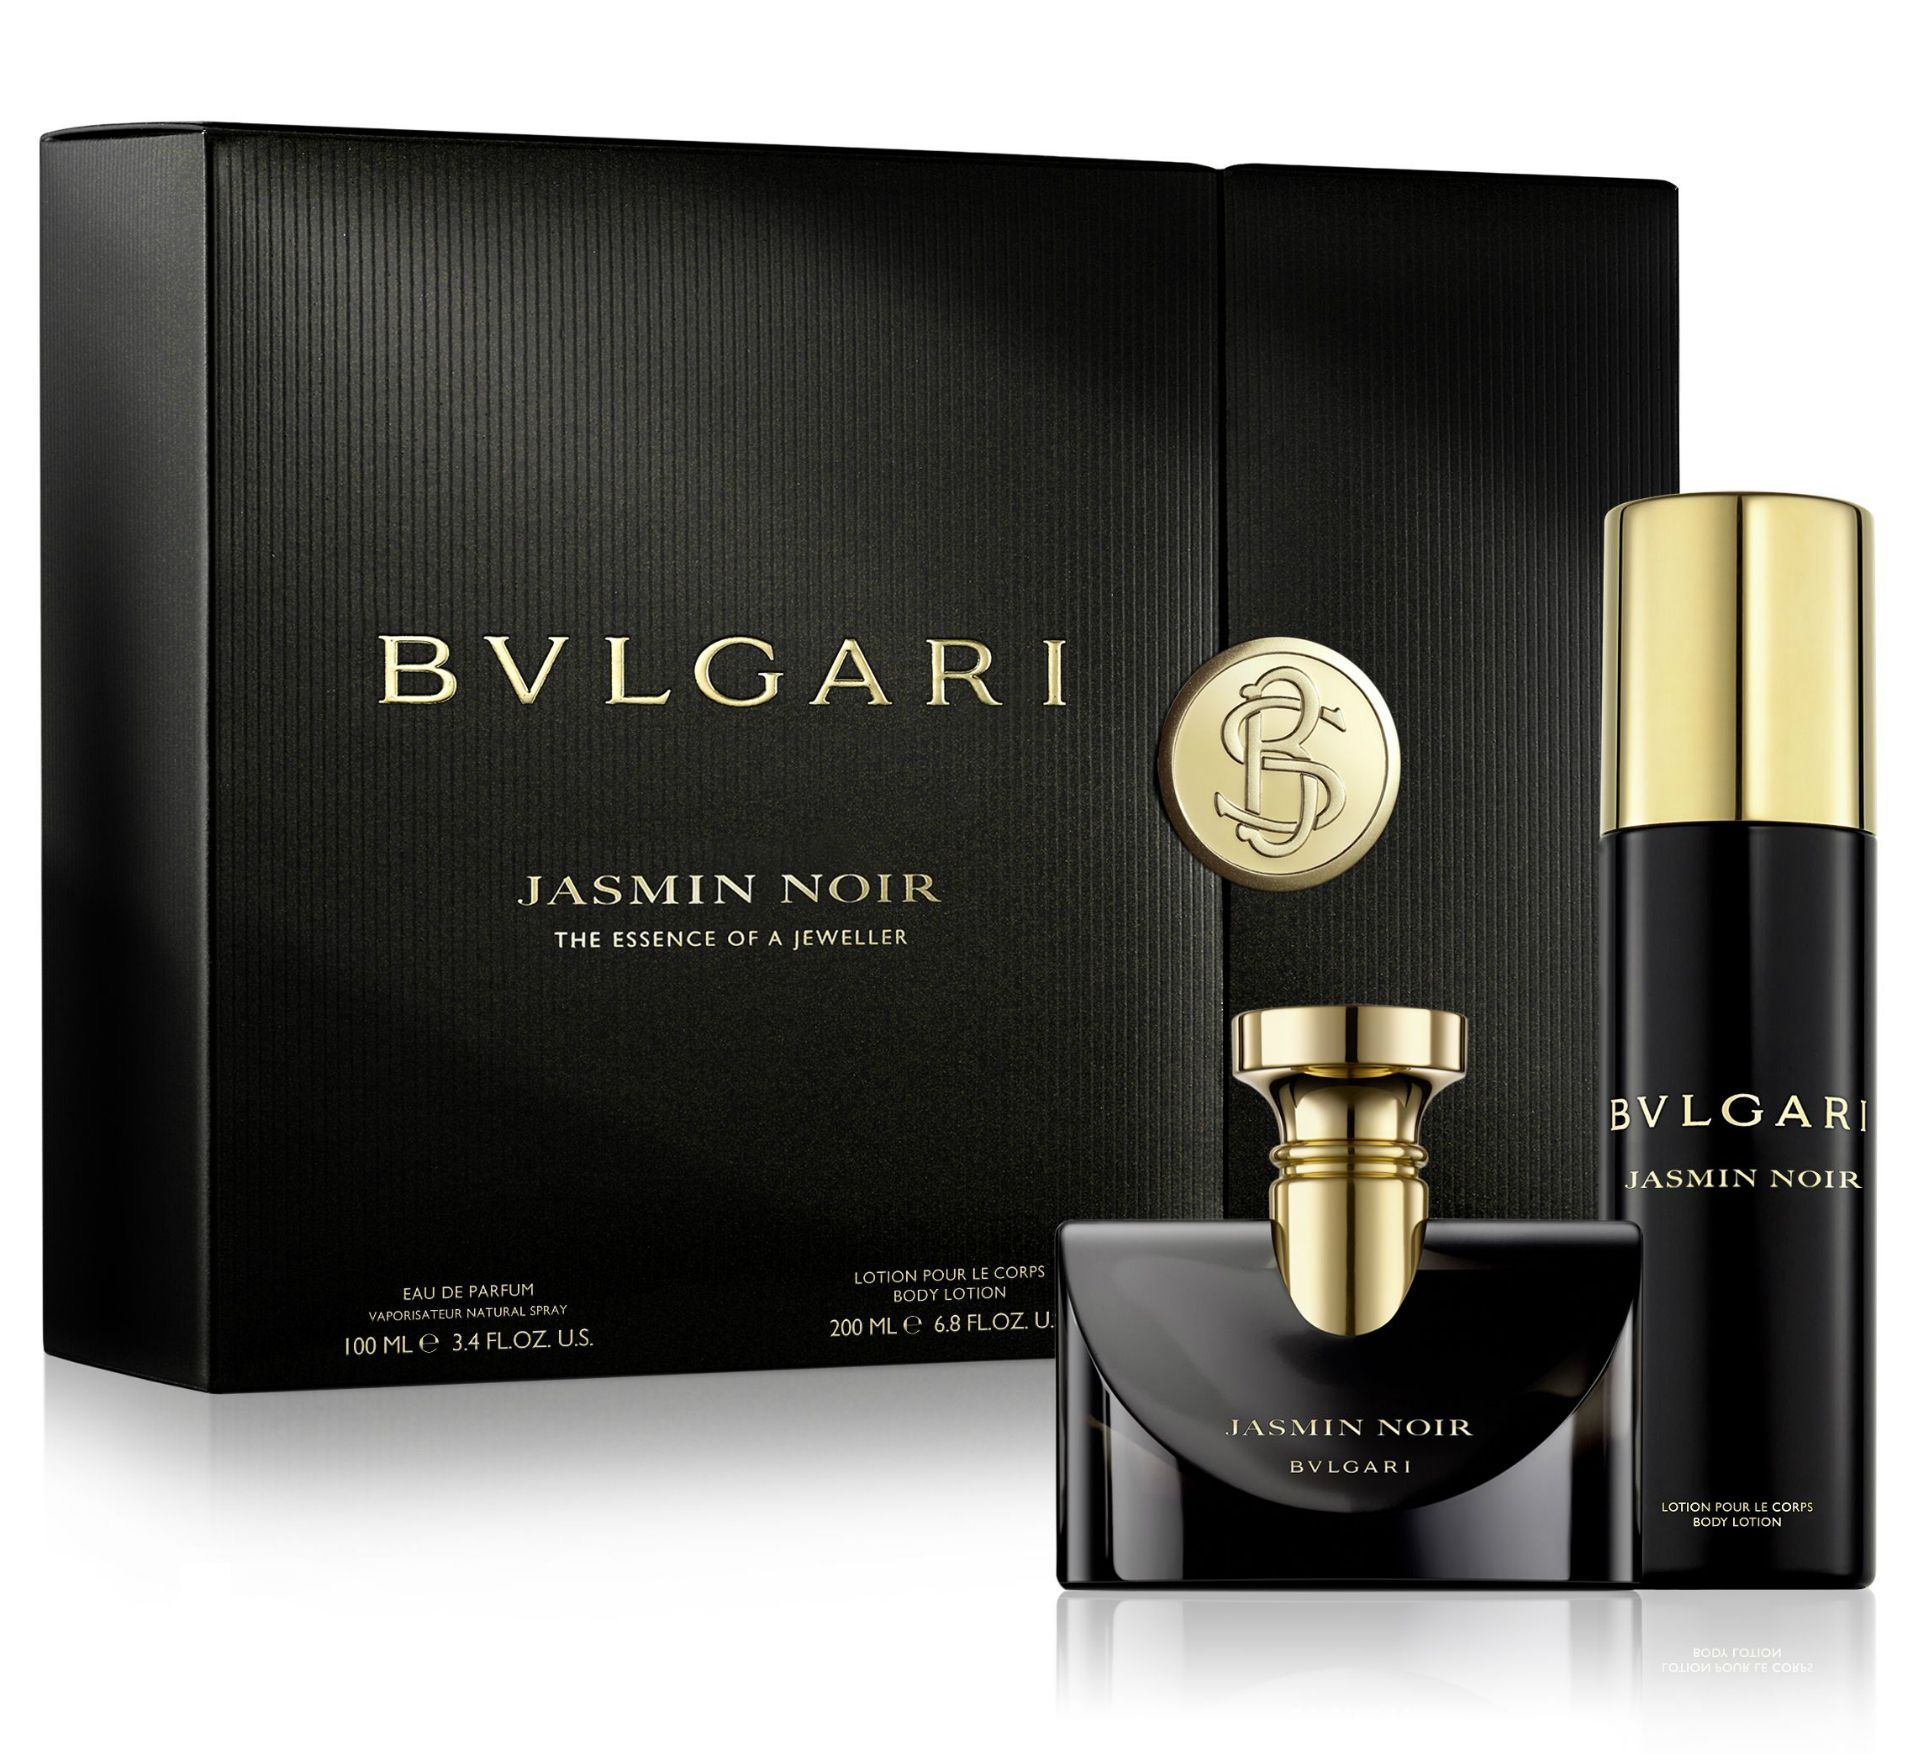 Pin by mar1mbo nyc on Package Design Fragrance Bvlgari